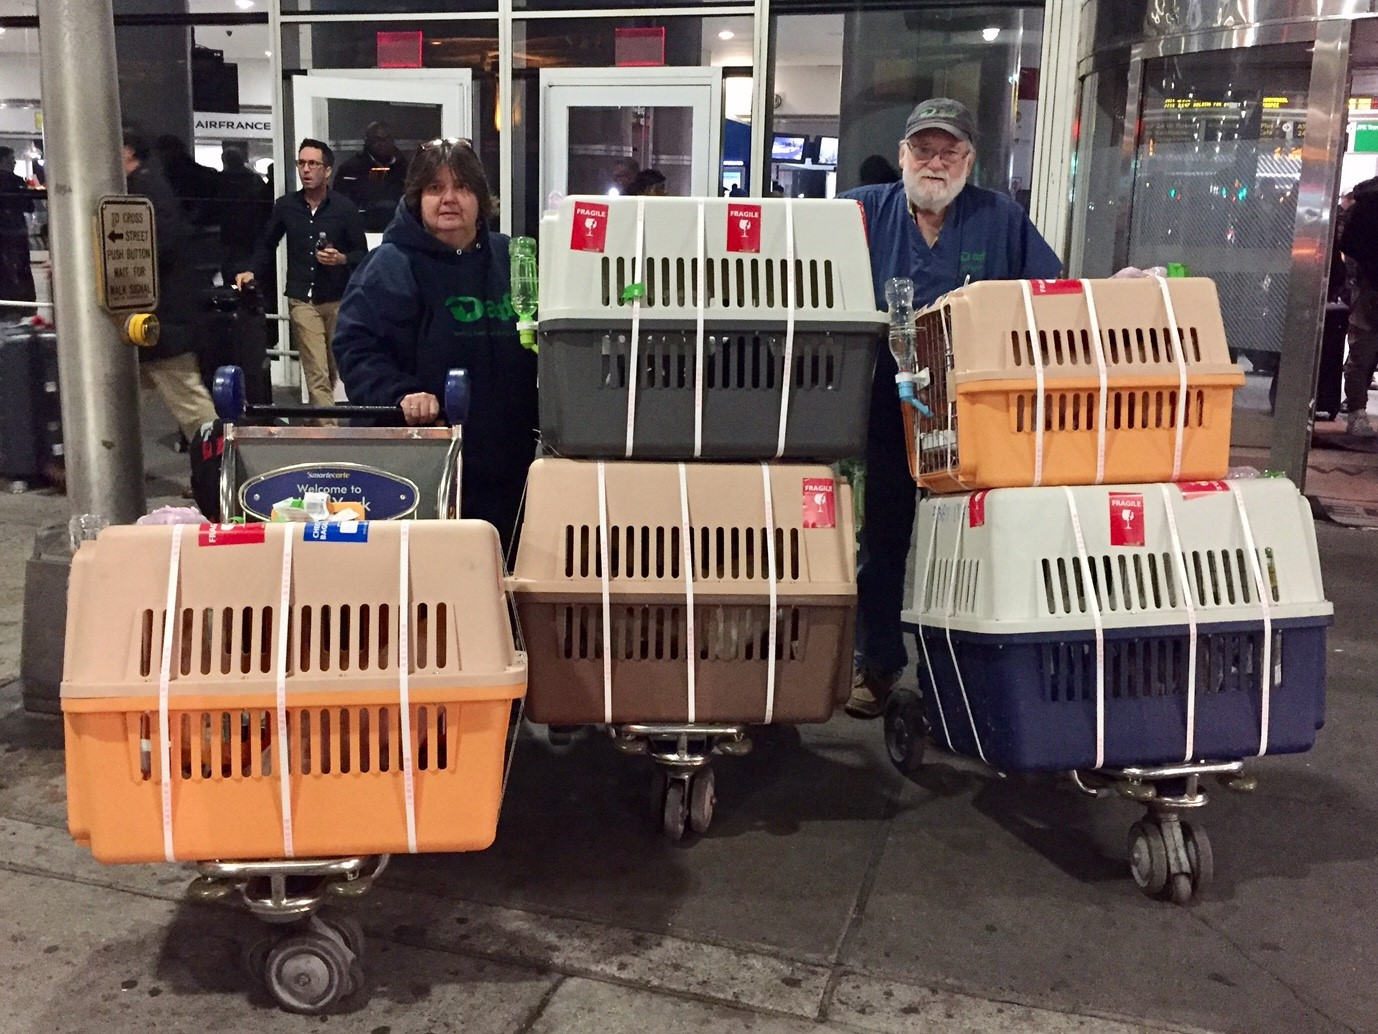 ARF's Michele Forrester and Jamie Forrester take the dogs on the final leg of their journey to the ARF Adoption Center in Wainscott.